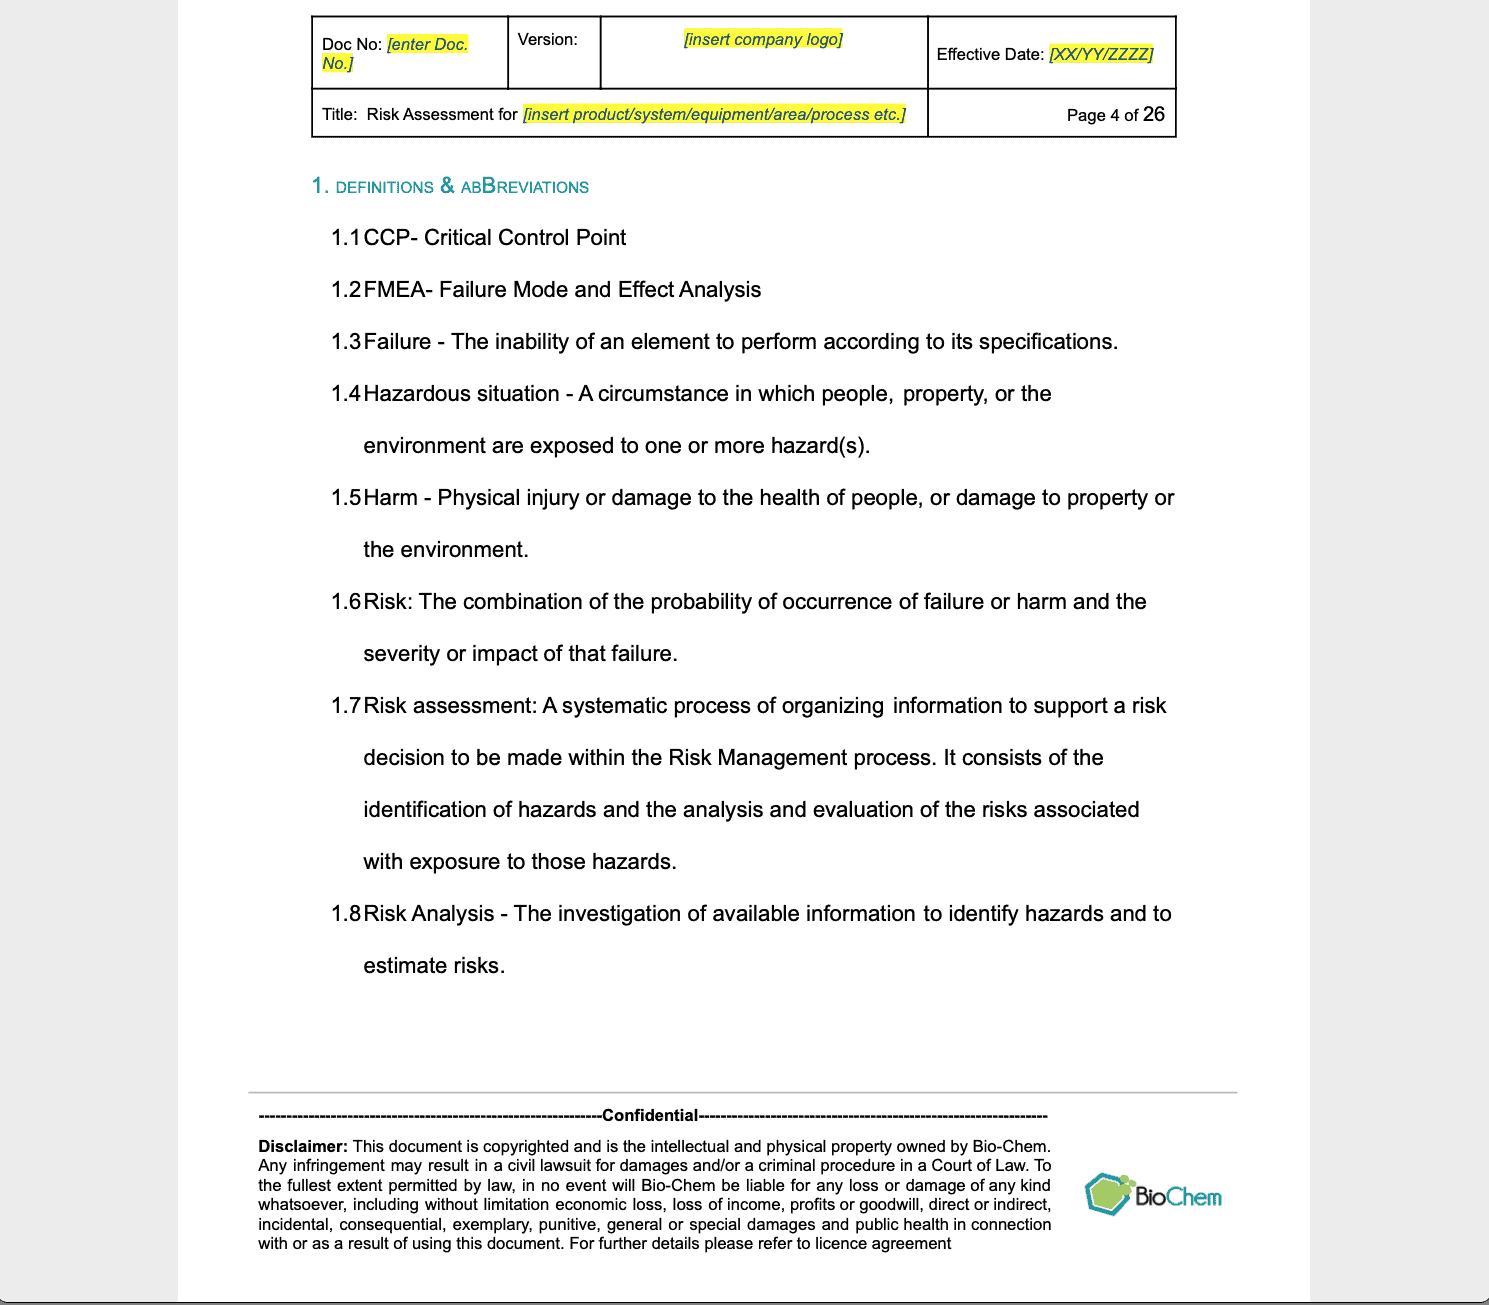 Risk Analysis and Risk Assessment document template FMEA Content Preview 3